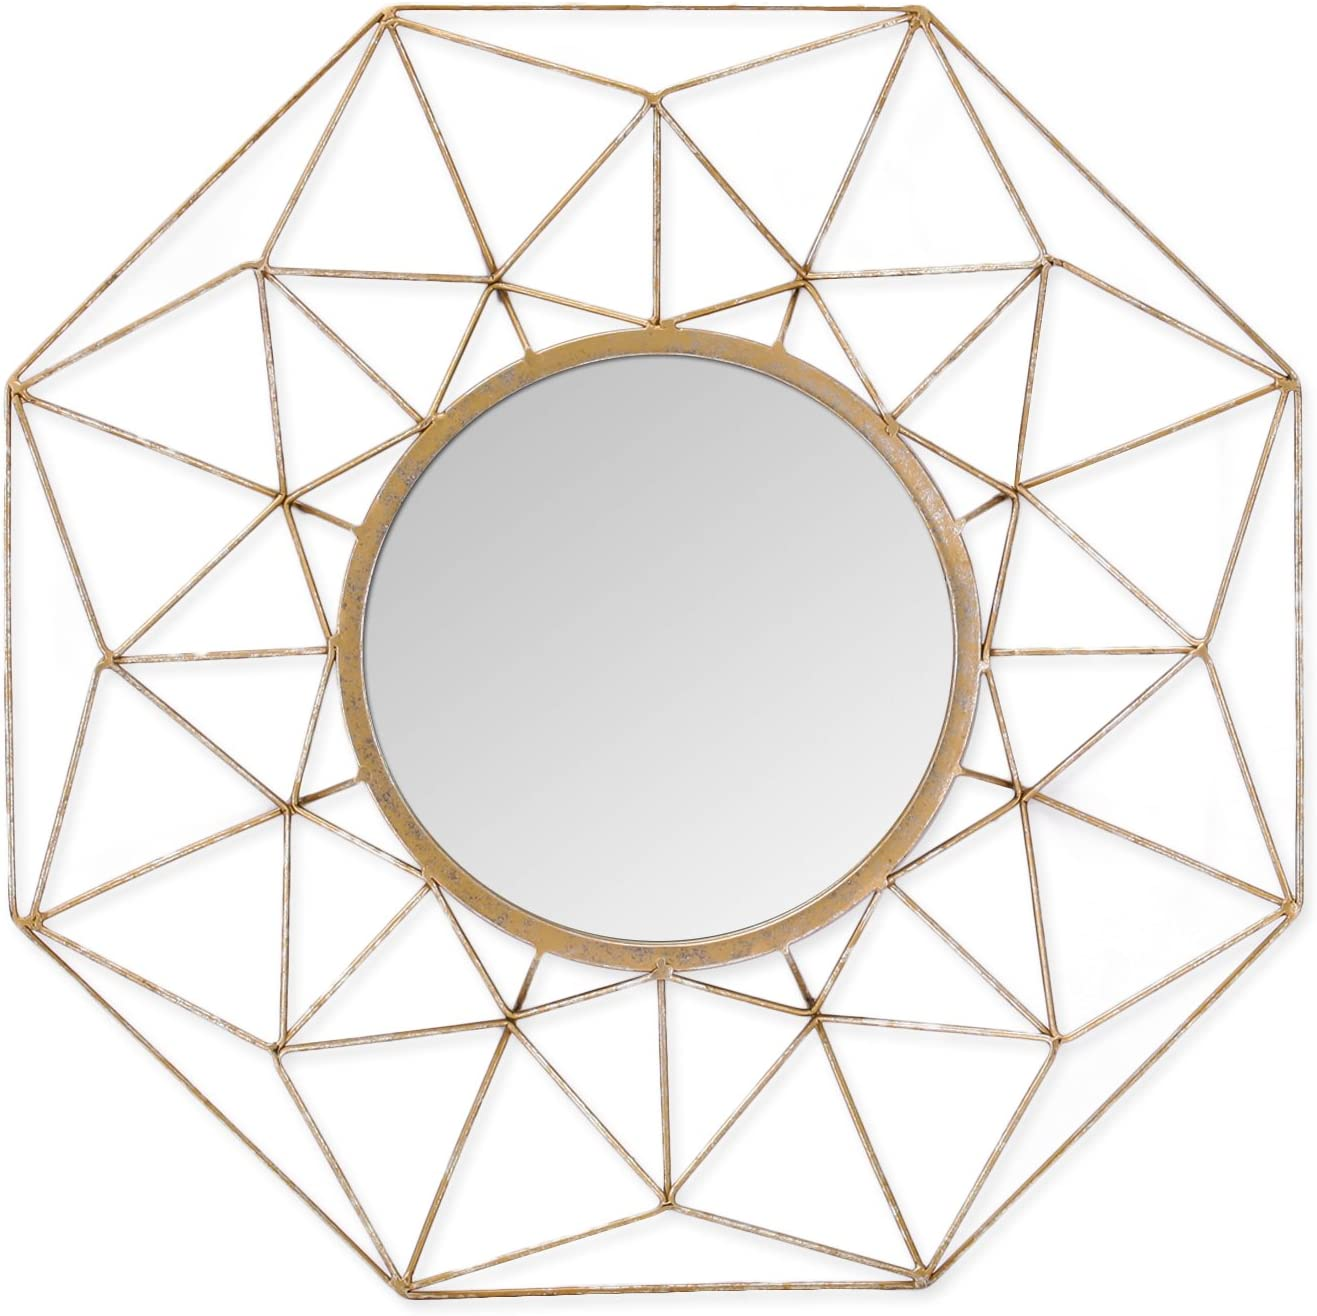 Adeco Metal Round Sunburst Mirror-Gold Color-23.7x23.7 Inches Home Wall Decor